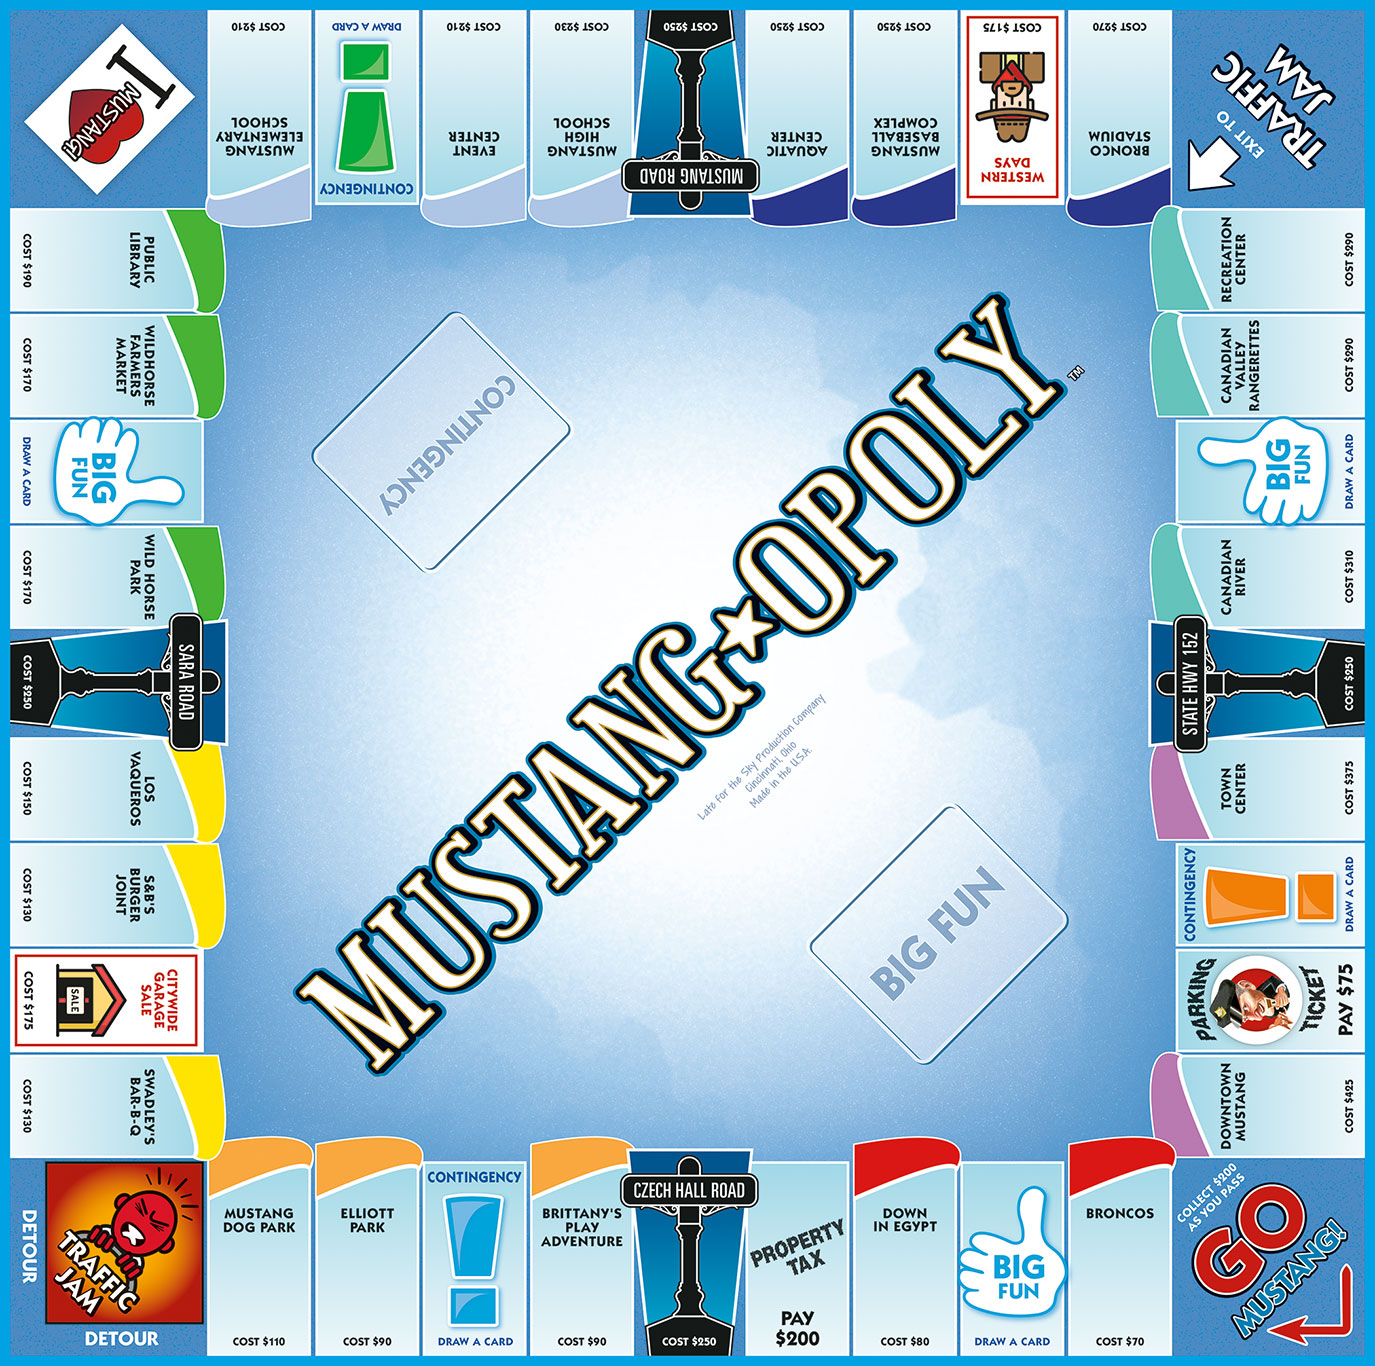 MUSTANG-OPOLY Board Game